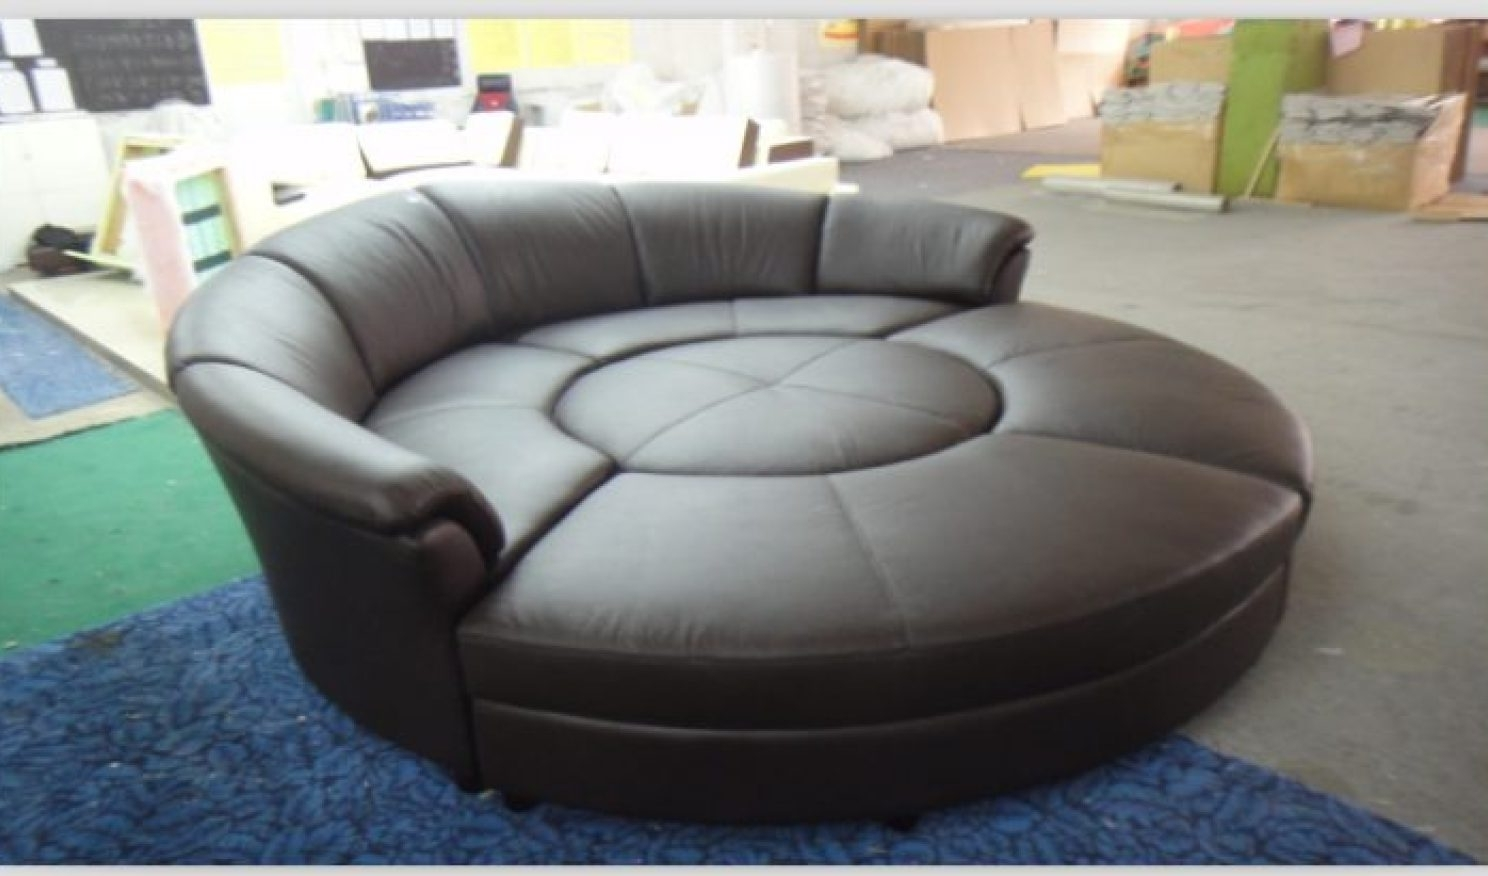 Big Round Sofa Chairs With Regard To Well Liked Sofa : Sofa Cute Big Chairs Stunning Circular Chair Explore Round (View 5 of 20)